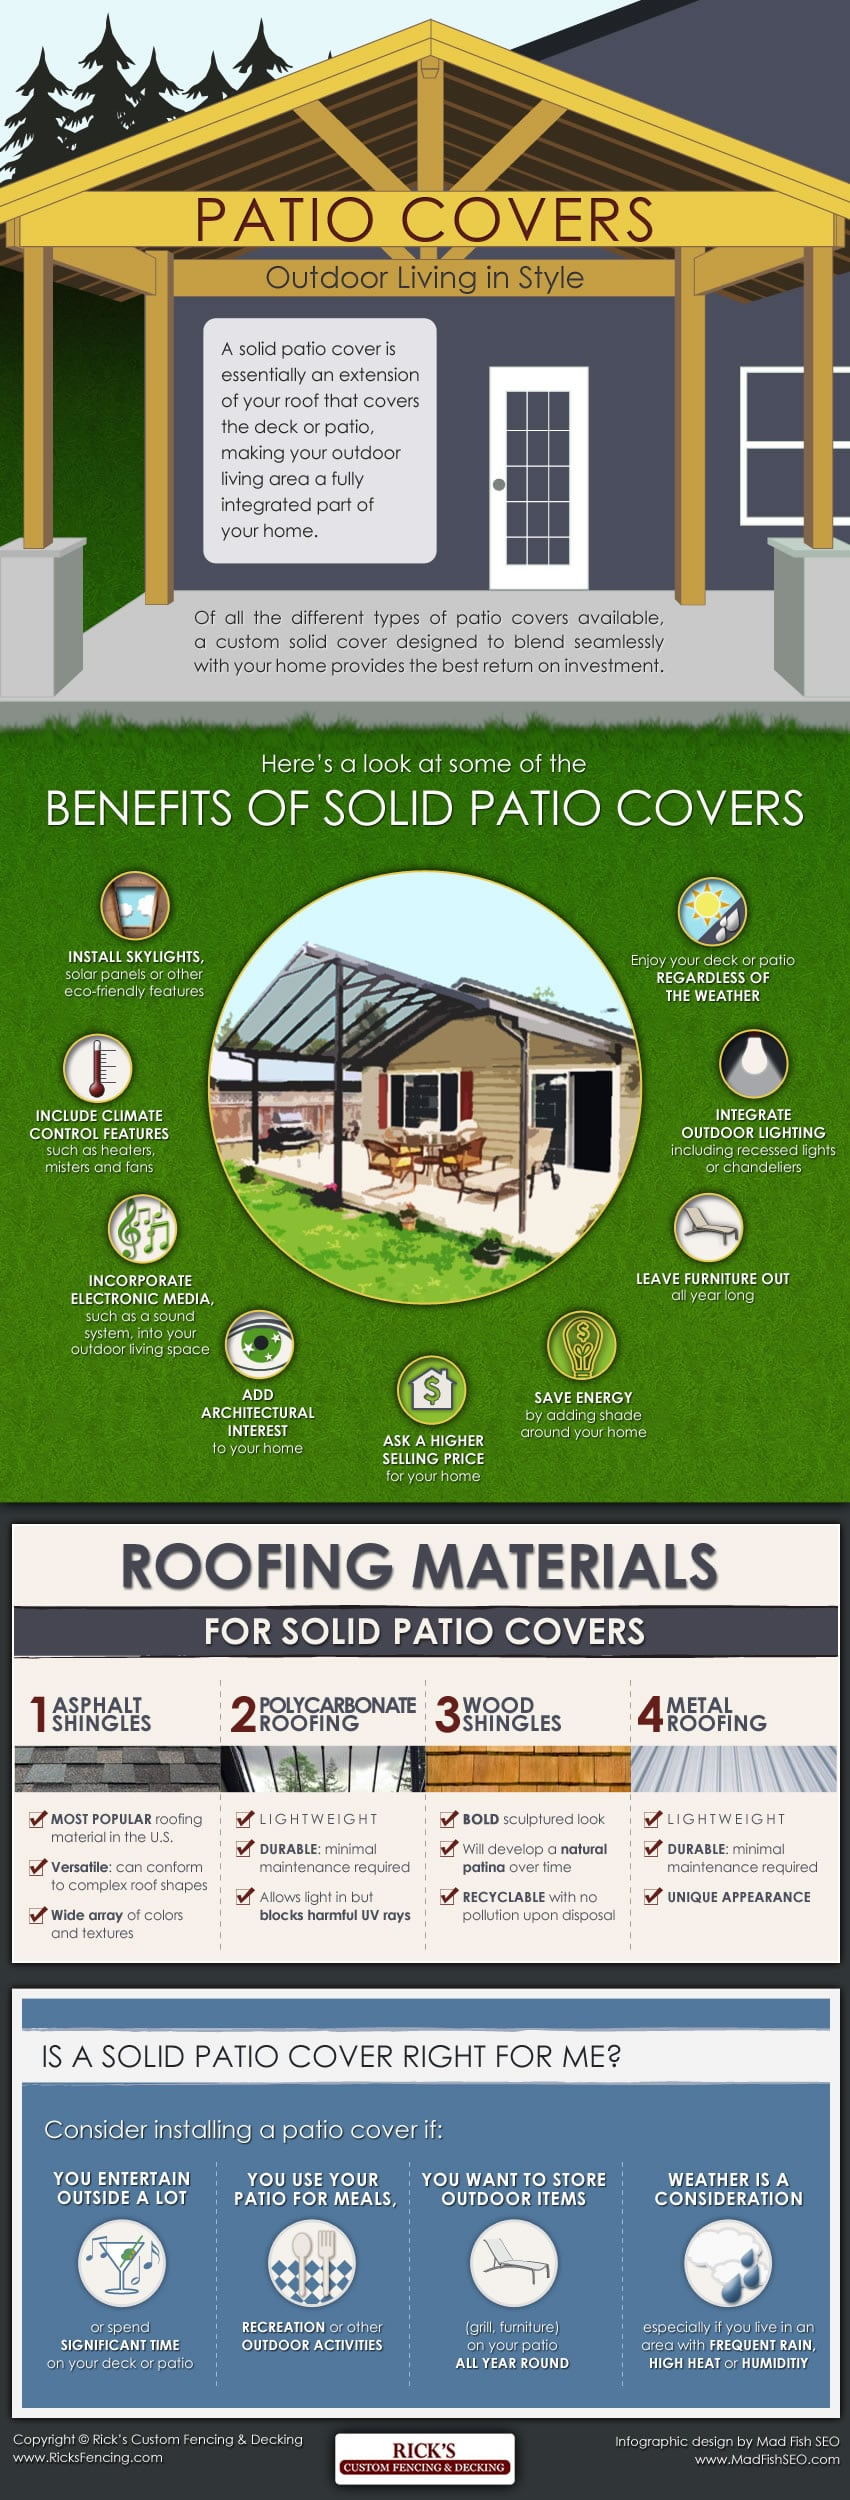 Solid Patio Covers - Outdoor Living in Style